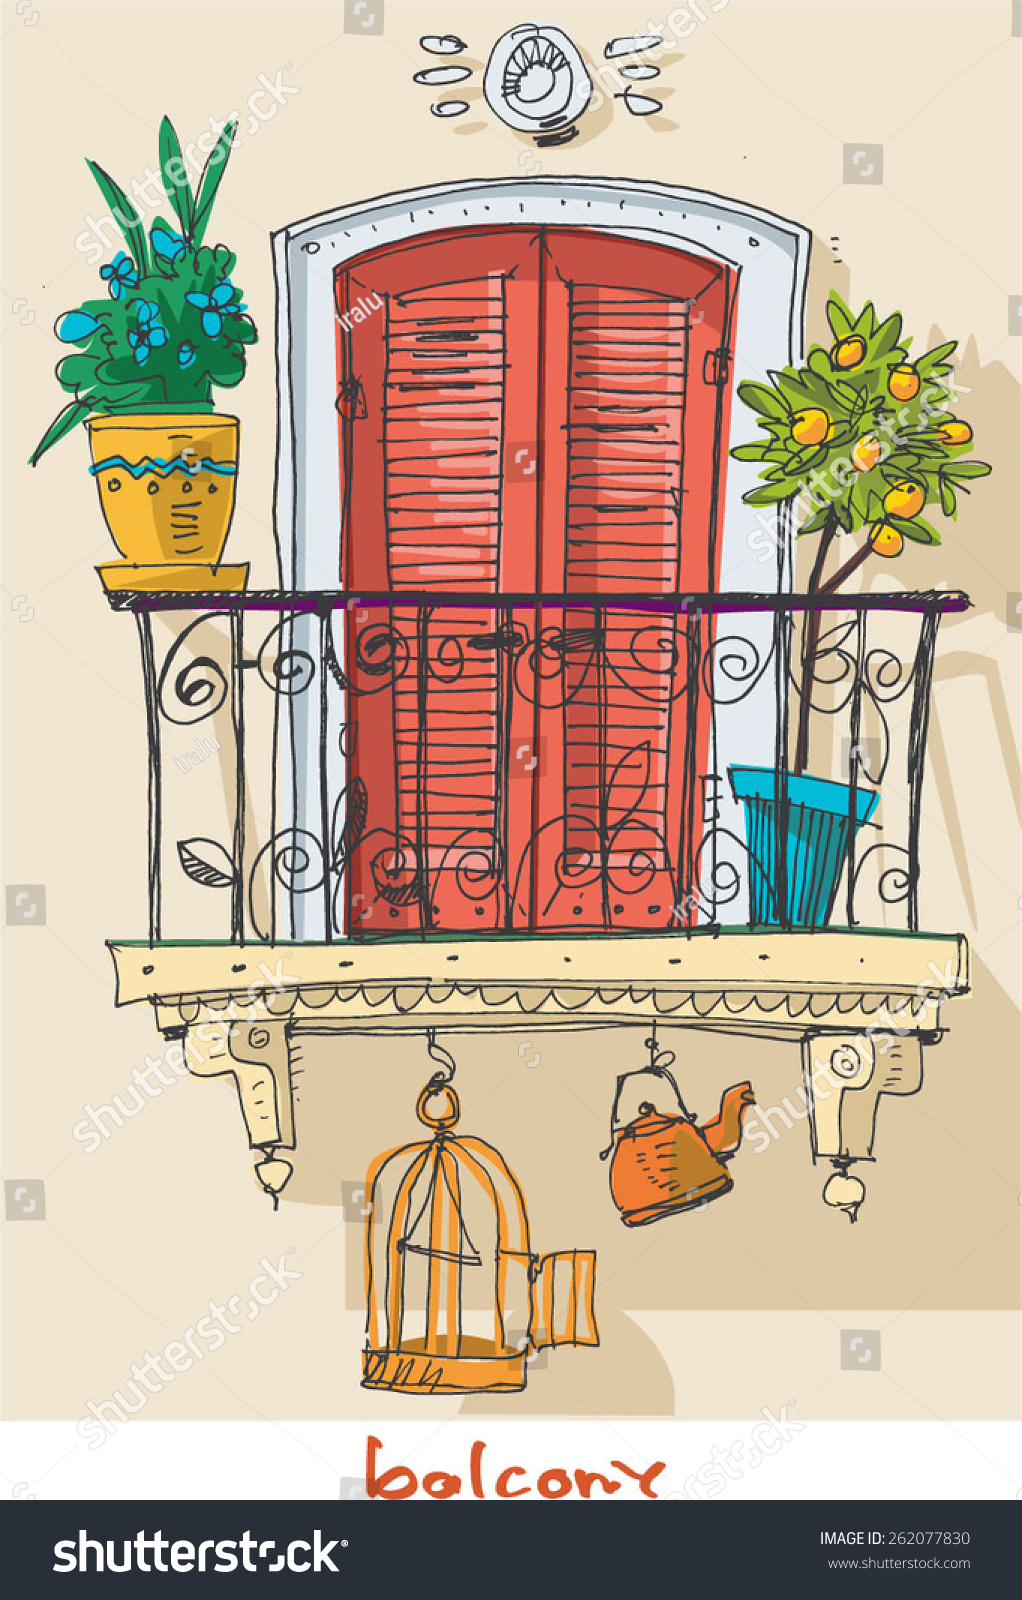 Cartoon balcony www.galleryhip.com - the hippest pics.